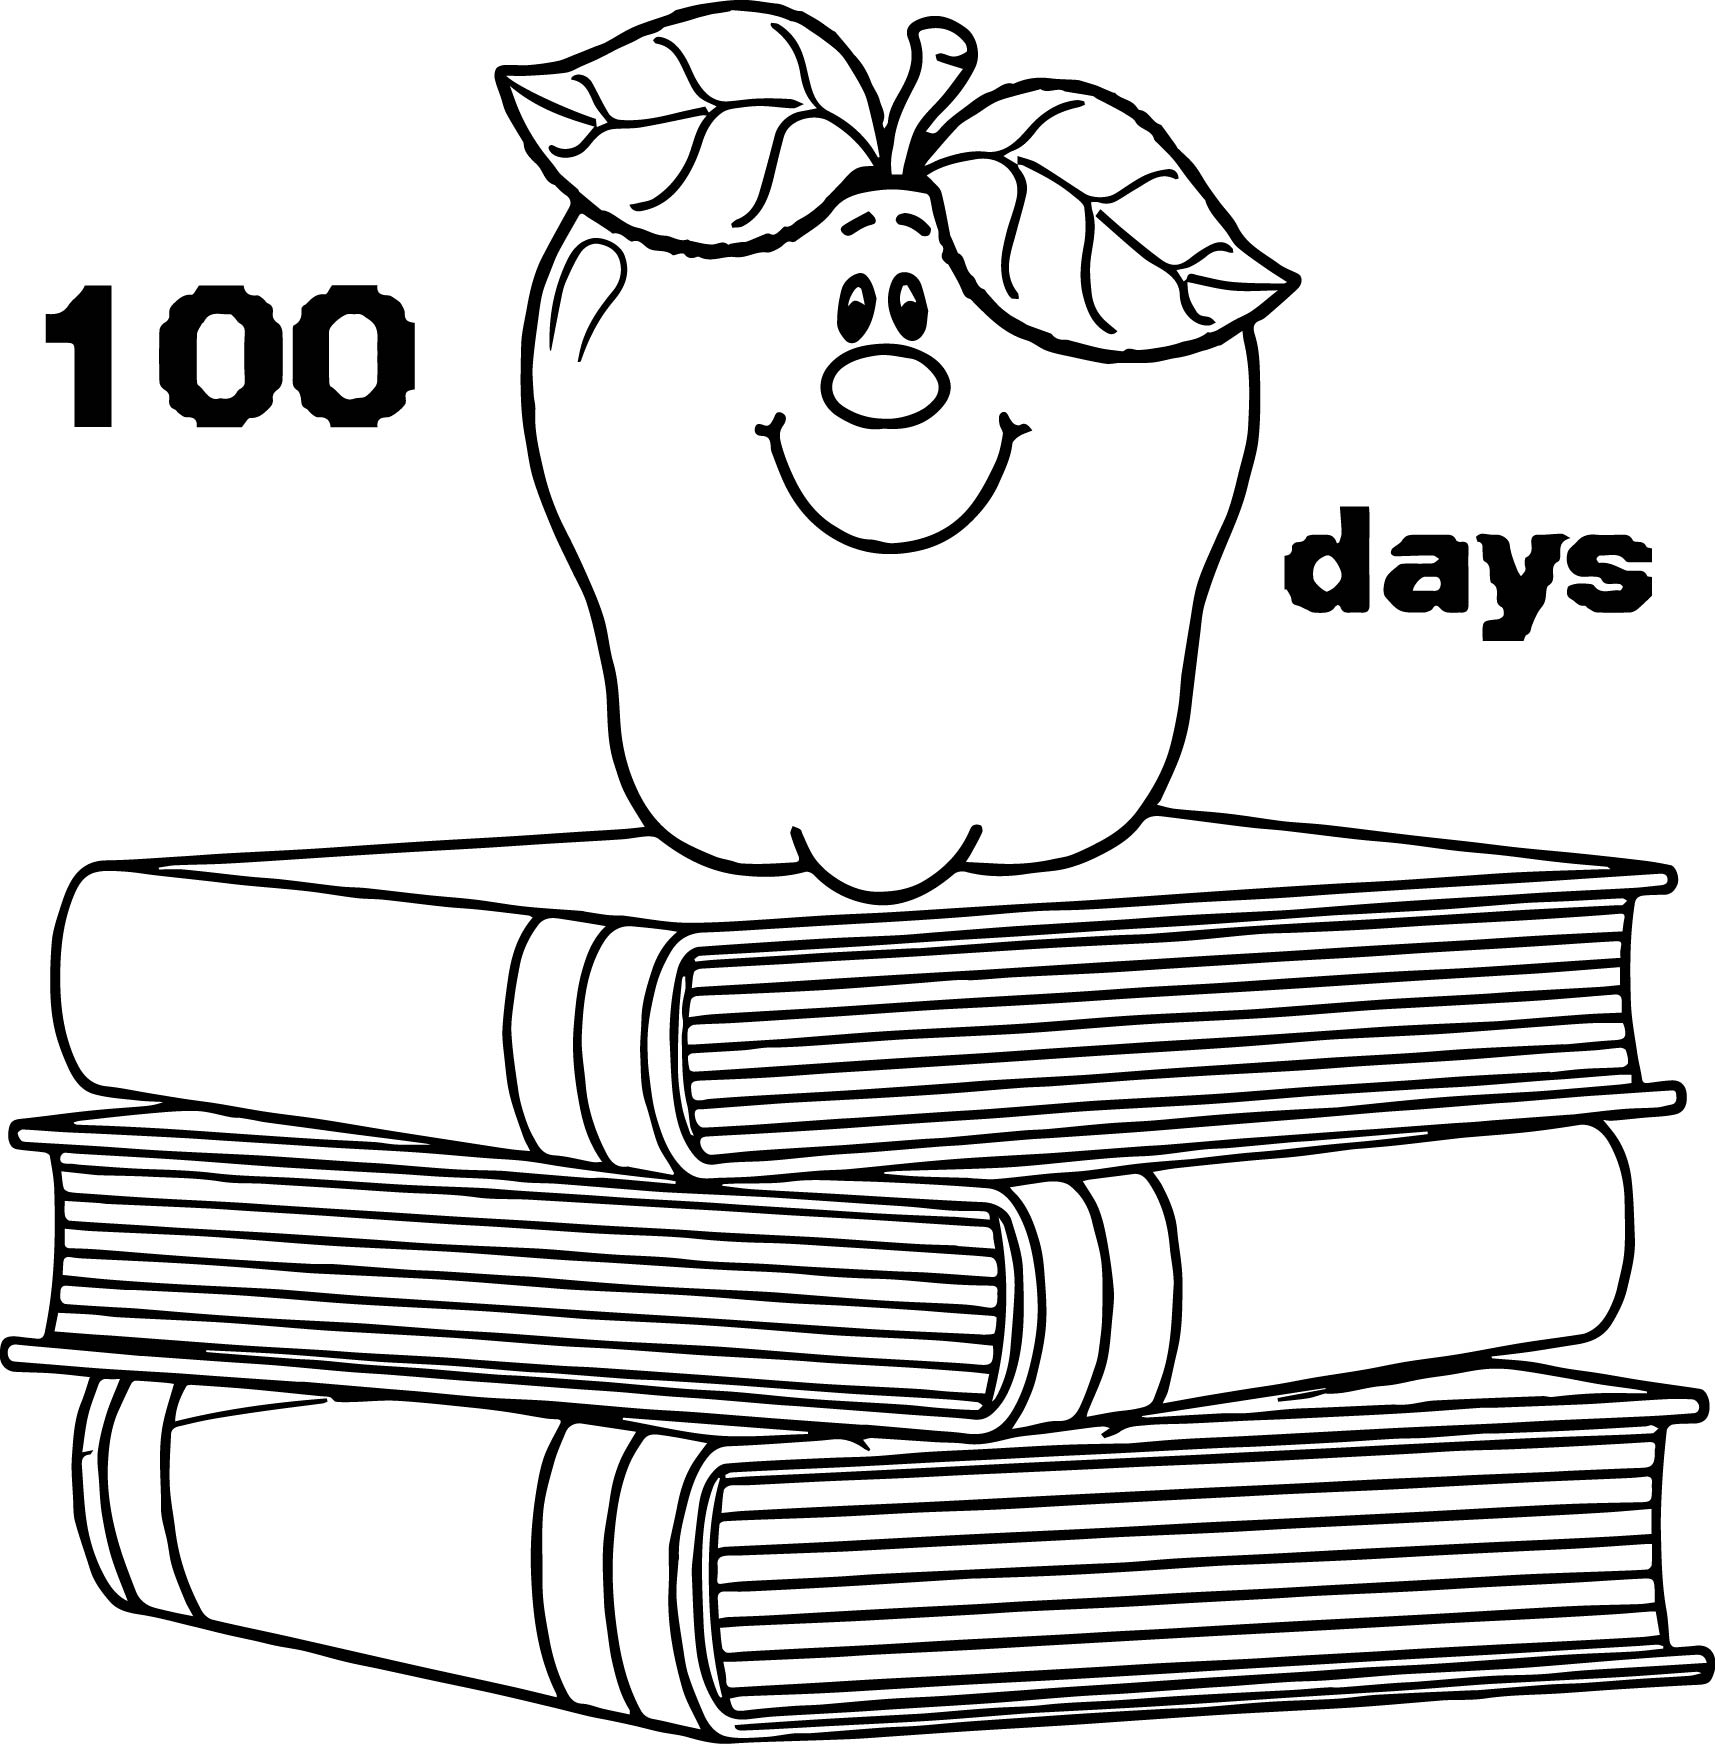 100 days school apple books coloring page for 100 coloring pages